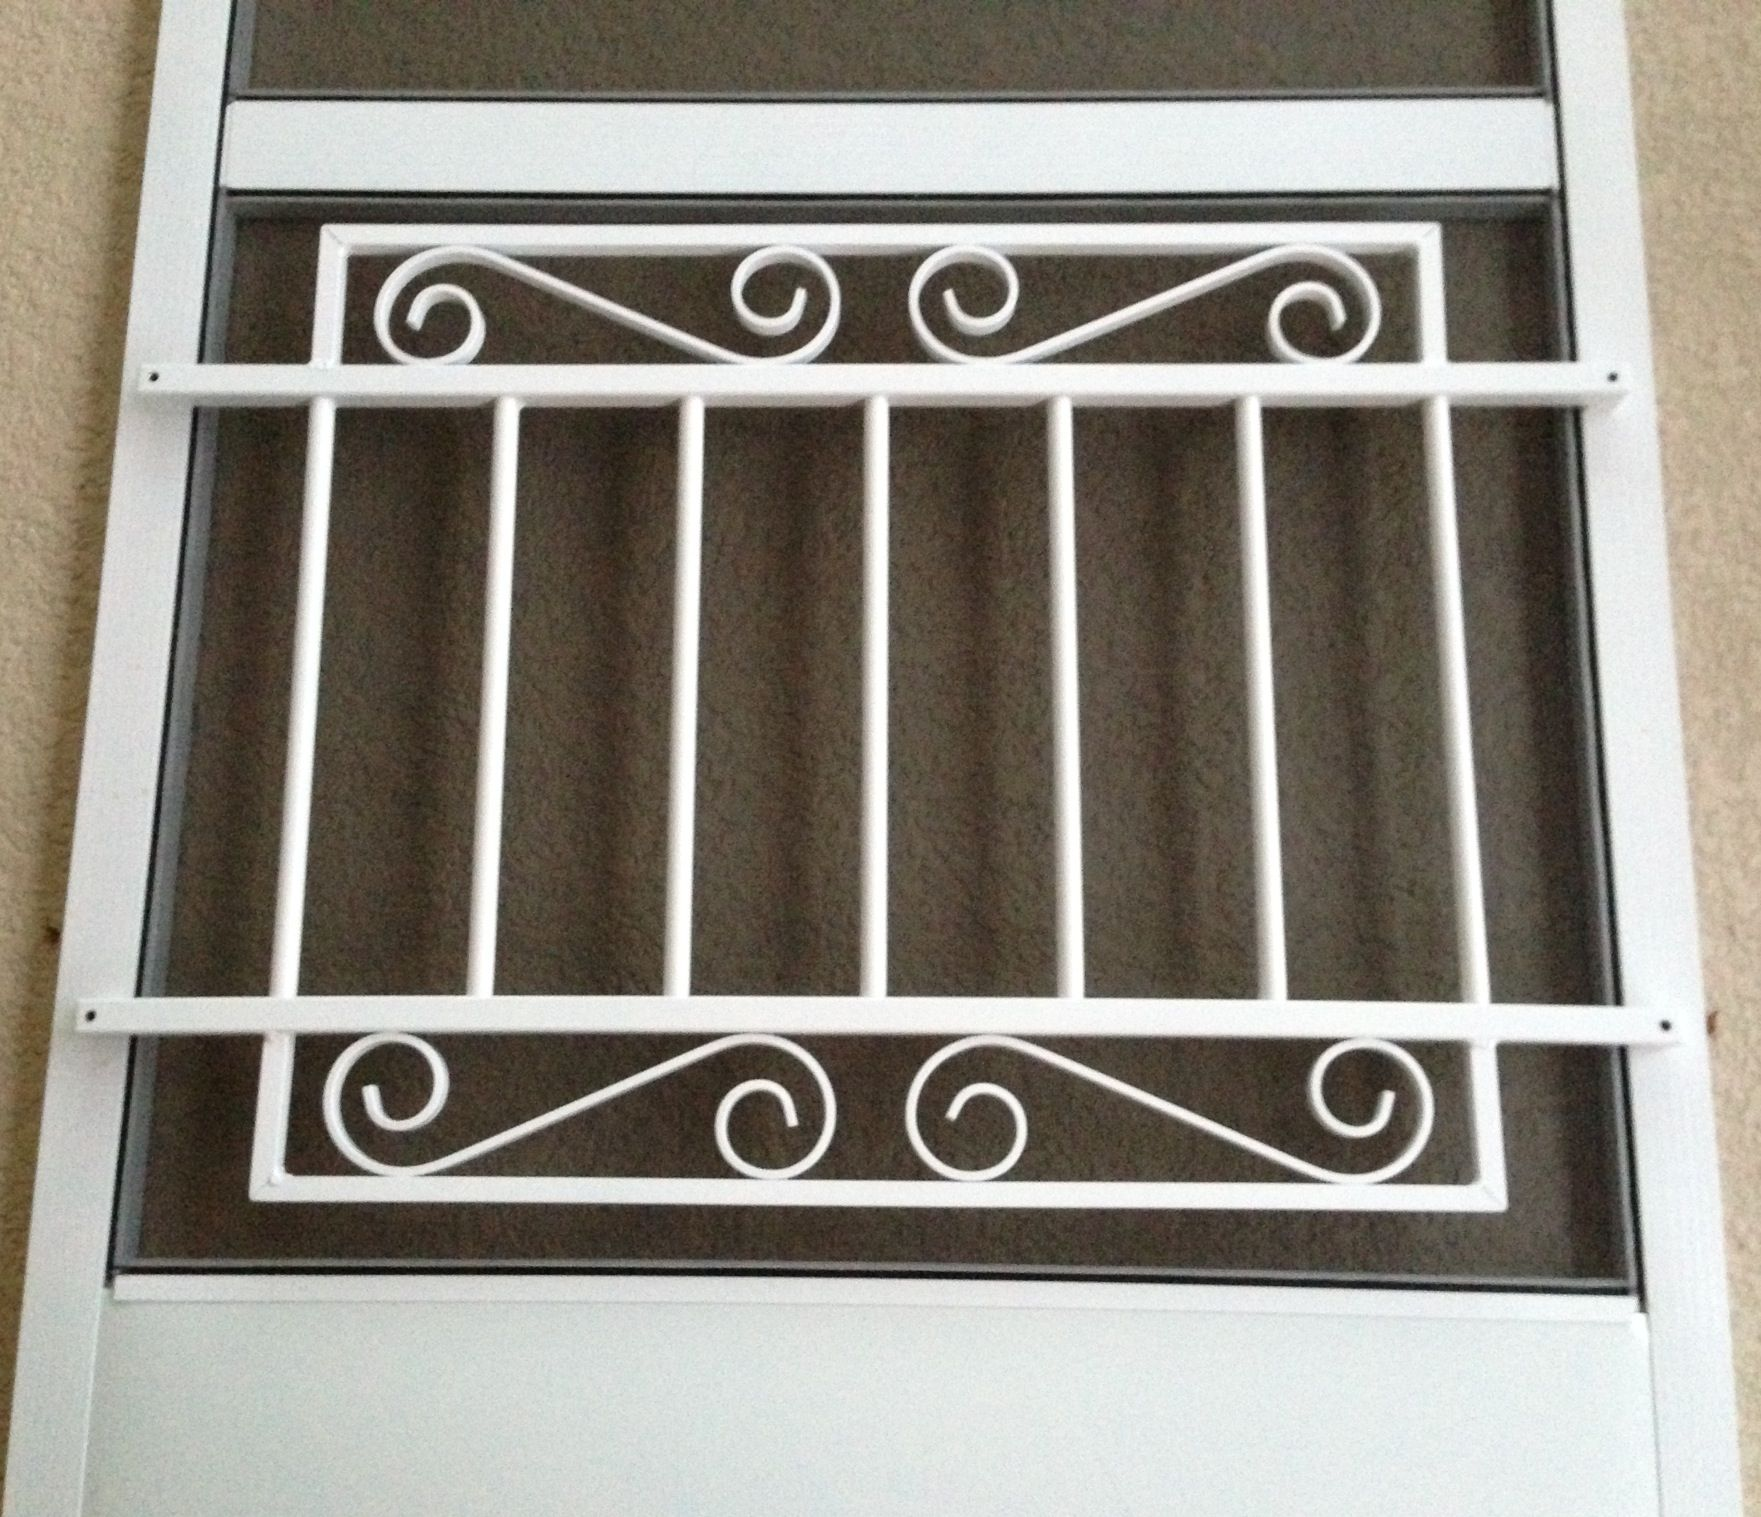 Screen door grille decorative protective by screendoorgrilles screen door grille decorative protective by screendoorgrilles 6000 decorative aluminum screen door grilles pinterest screens doors and aluminum vtopaller Image collections